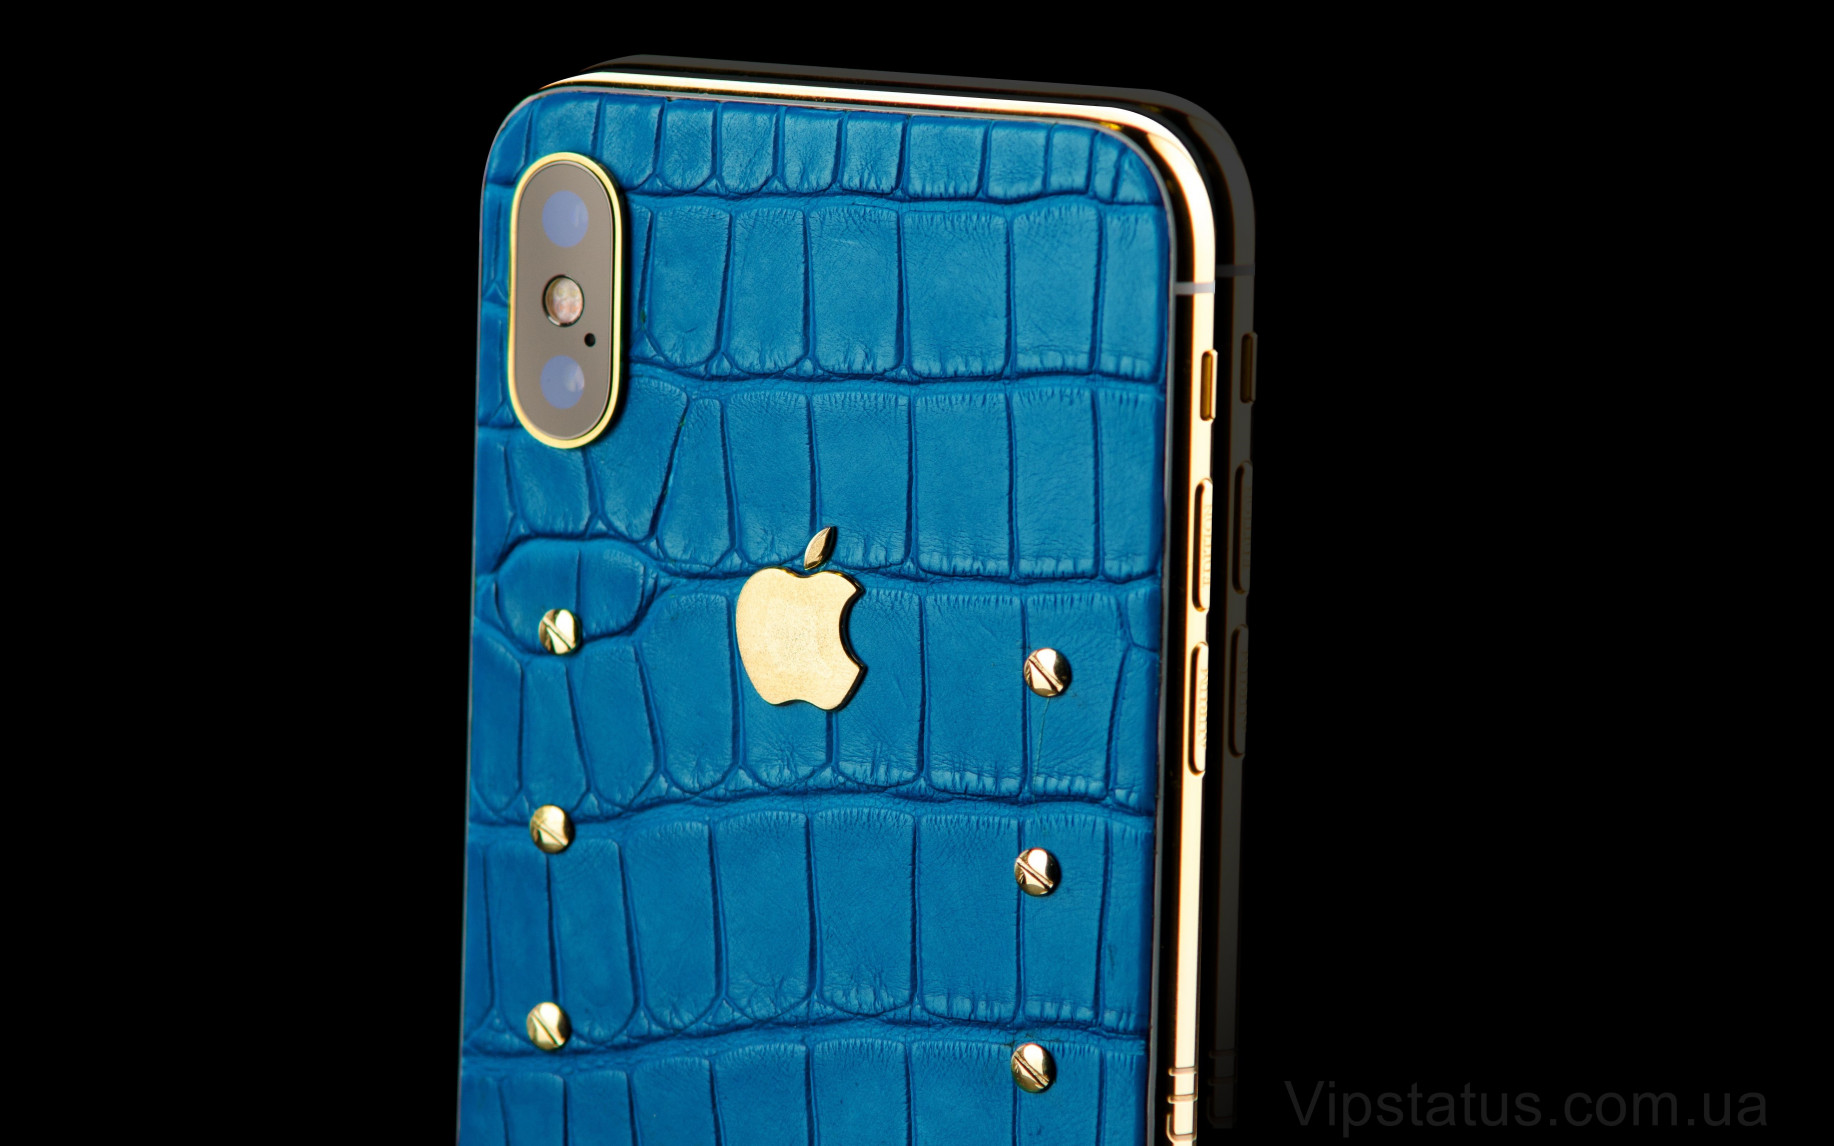 Elite Blue Lord IPHONE 12 PRO MAX 512 GB Blue Lord IPHONE 12 PRO MAX 512 GB image 3